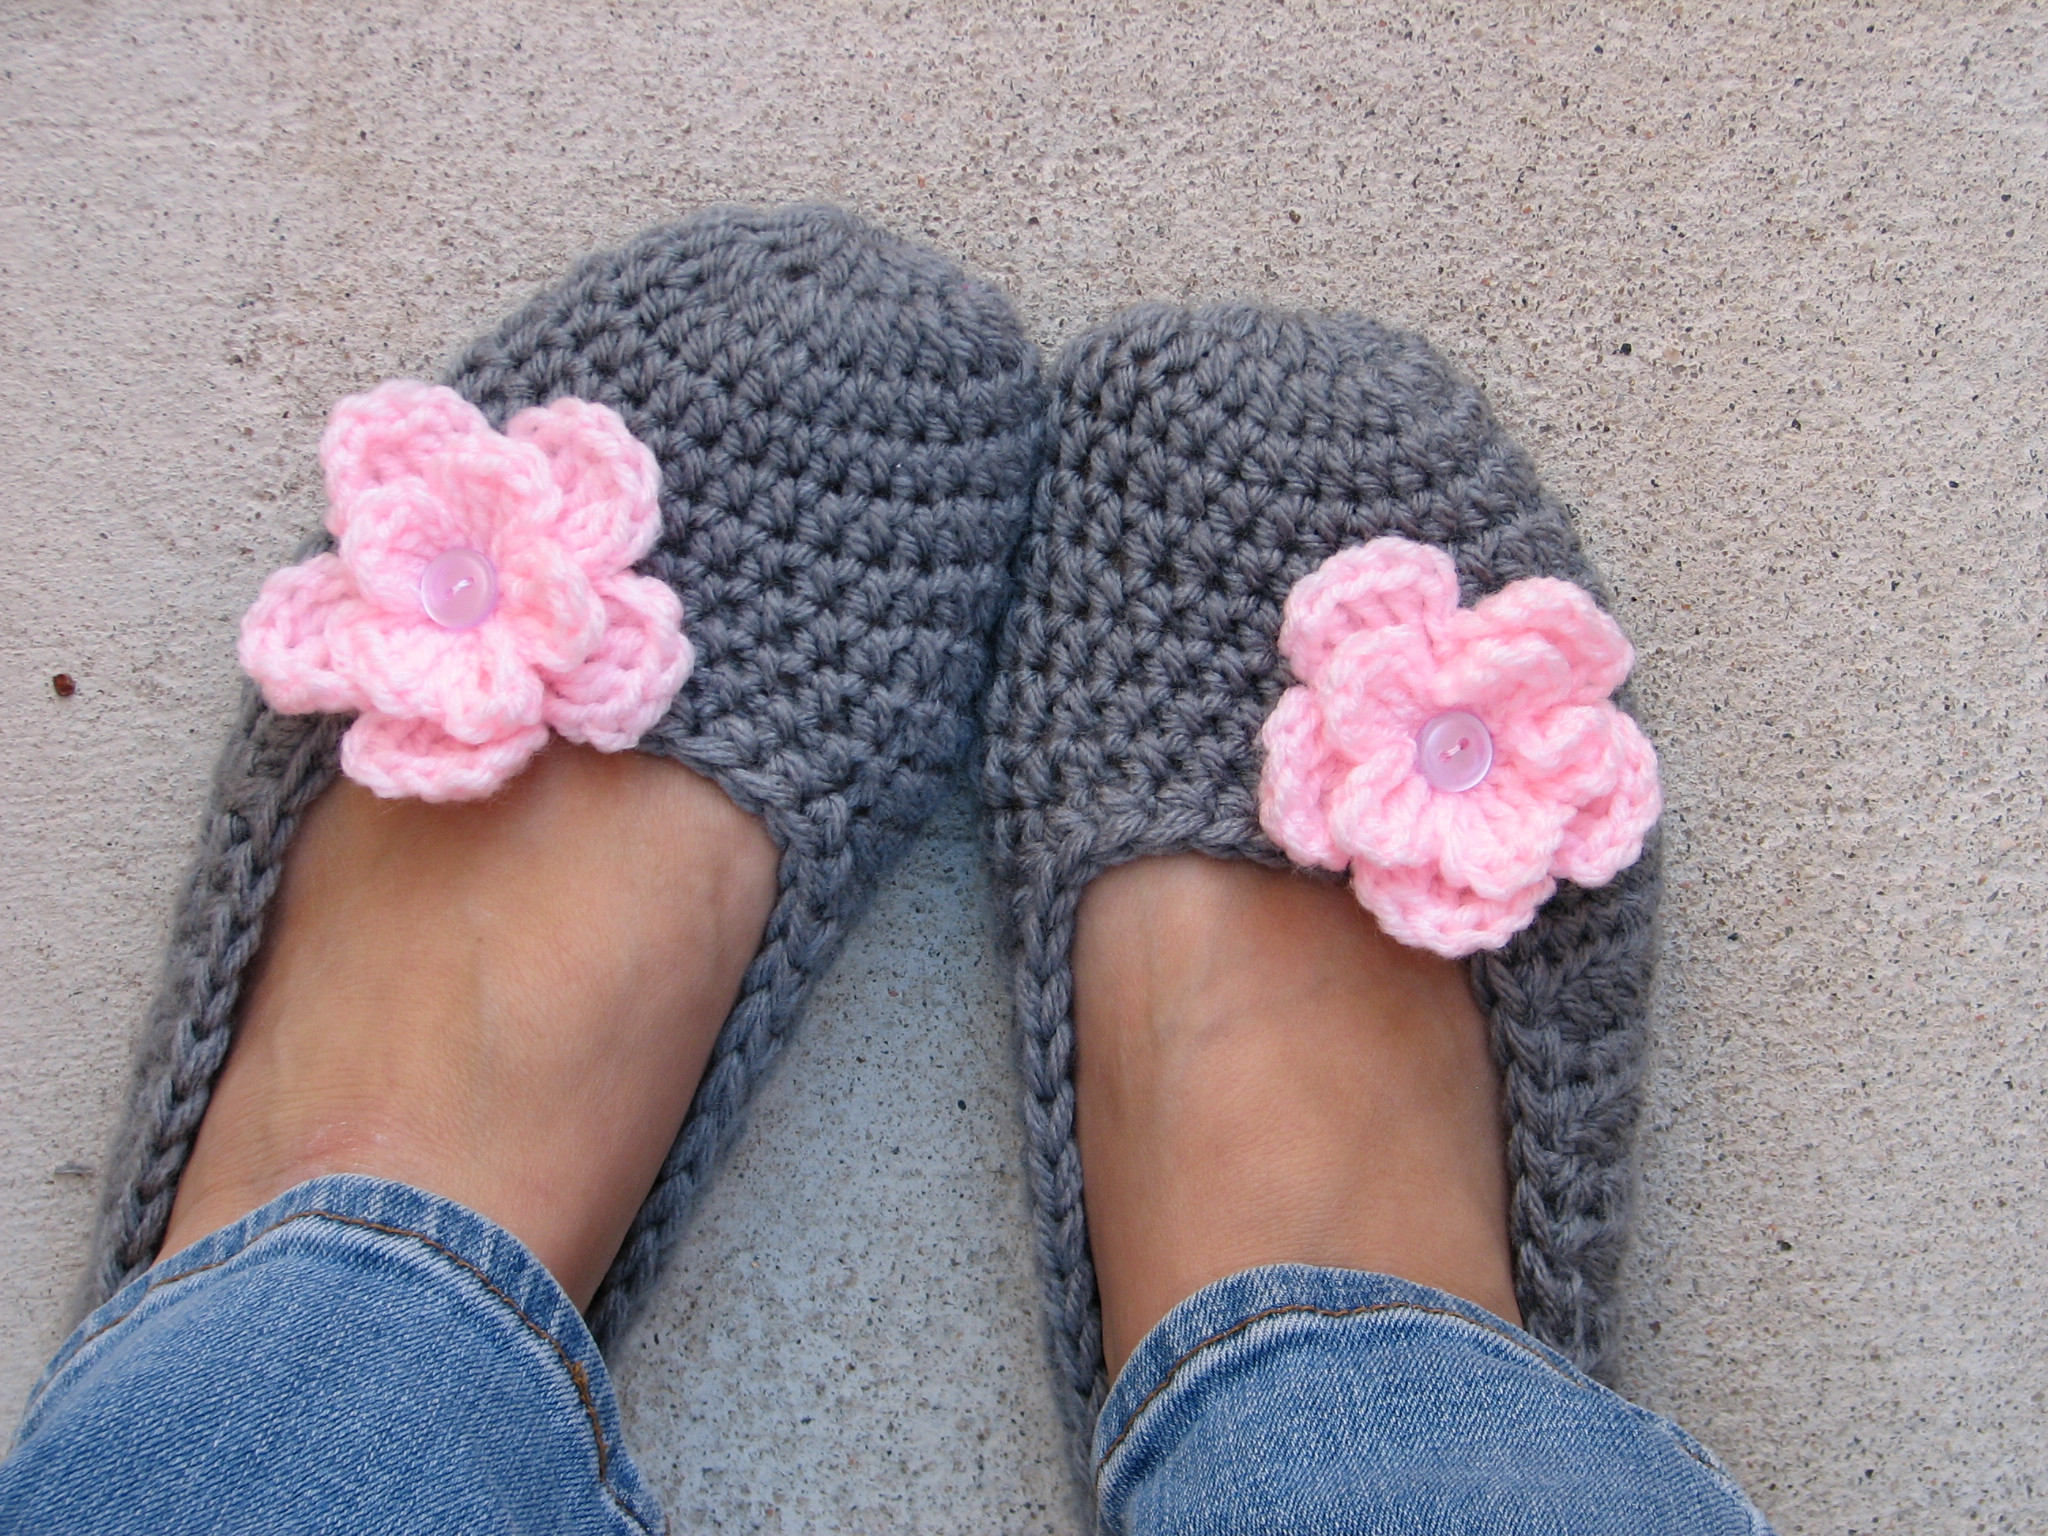 Best Of Quick Crochet Slippers Crochet and Knit Quick and Easy Crochet Patterns for Beginners Of Awesome 48 Photos Quick and Easy Crochet Patterns for Beginners